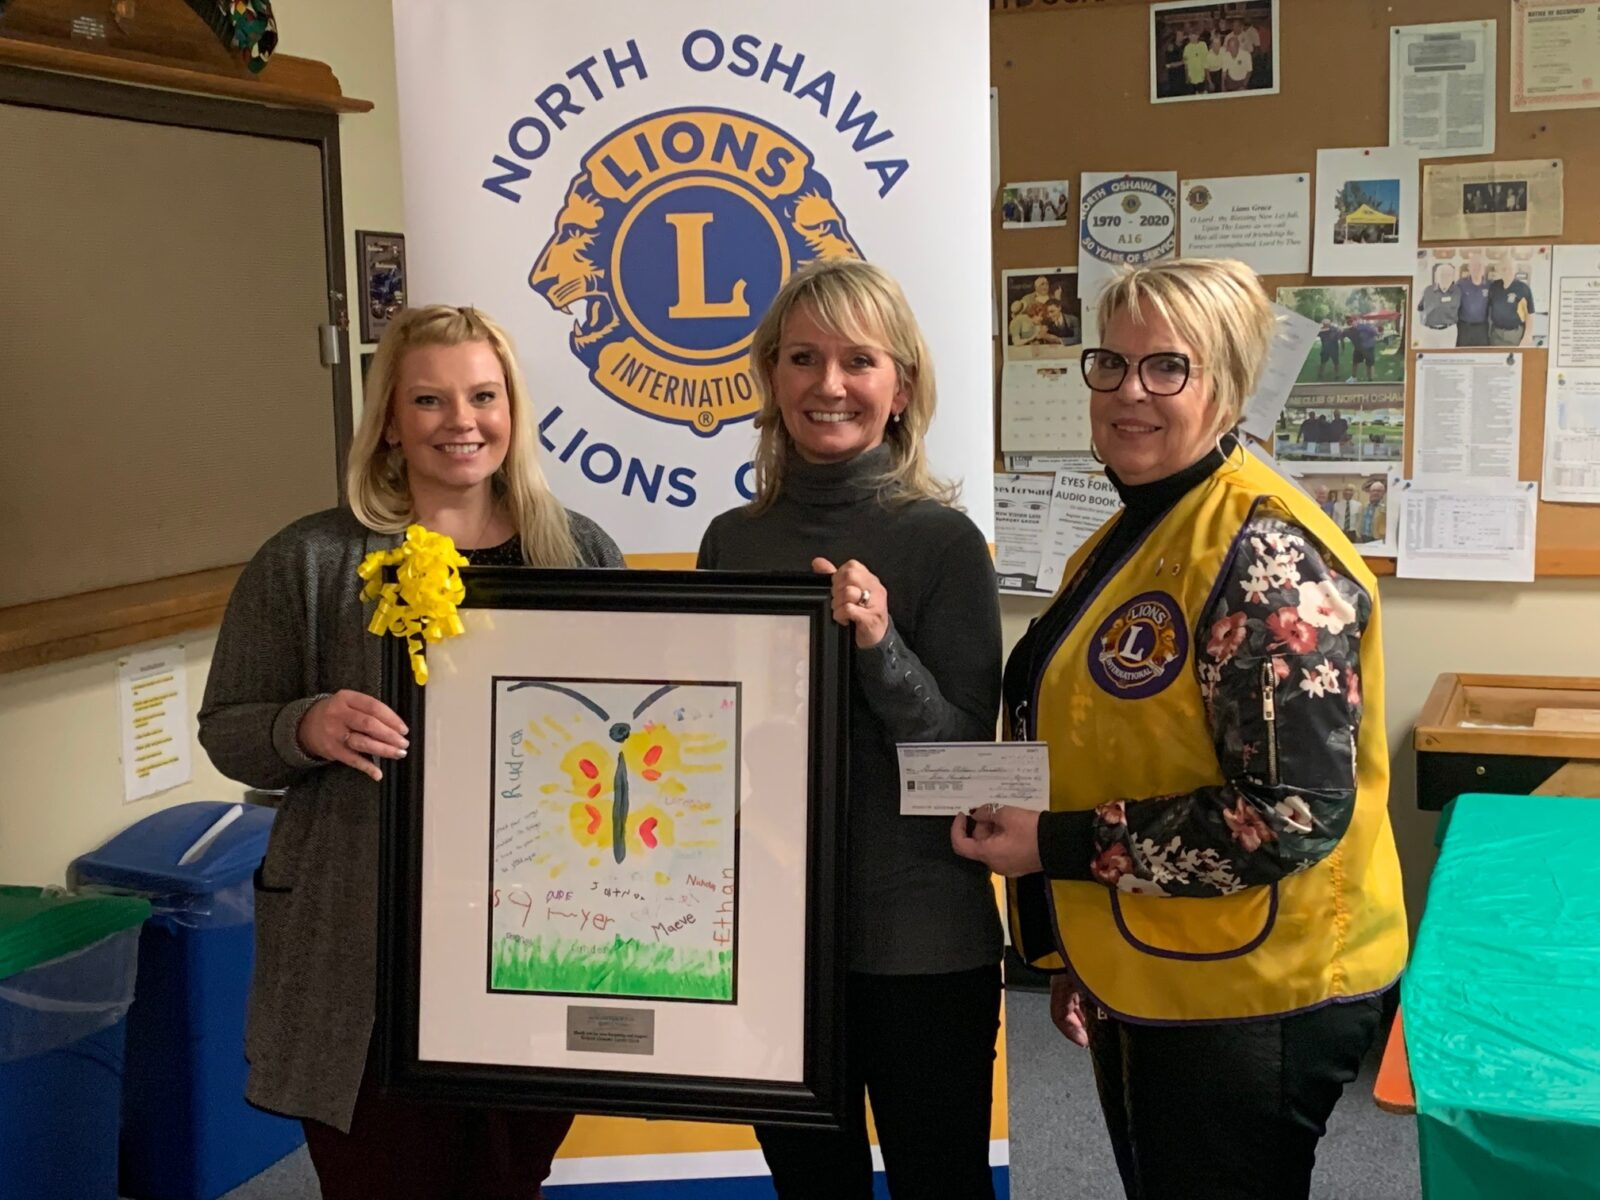 Thanks for believing in Grandview, North Oshawa Lions Club